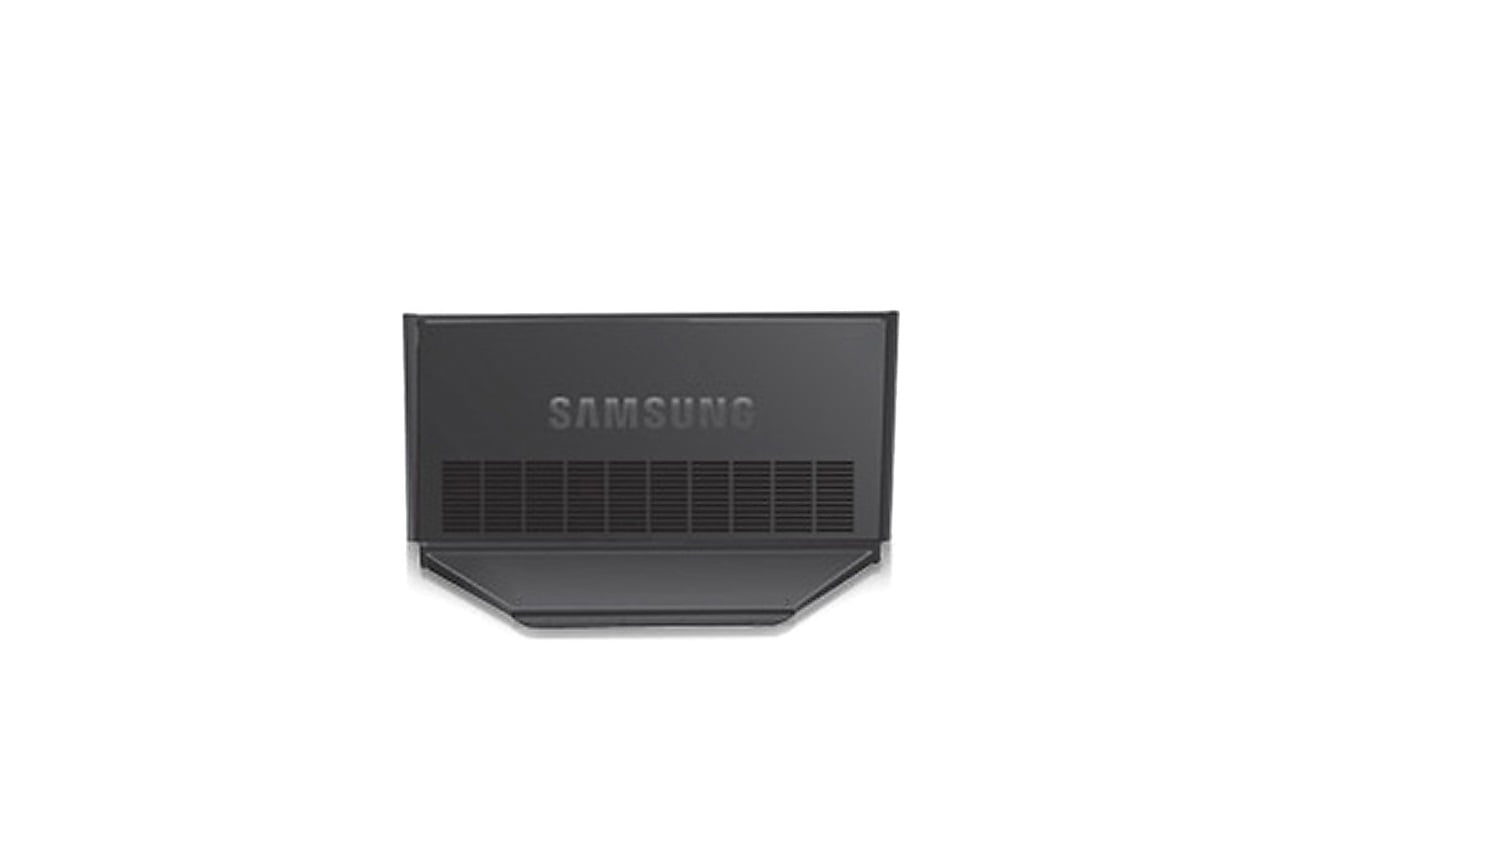 Samsung MID40-UX3/ZA Wall Mount For Flat Panel Display 40